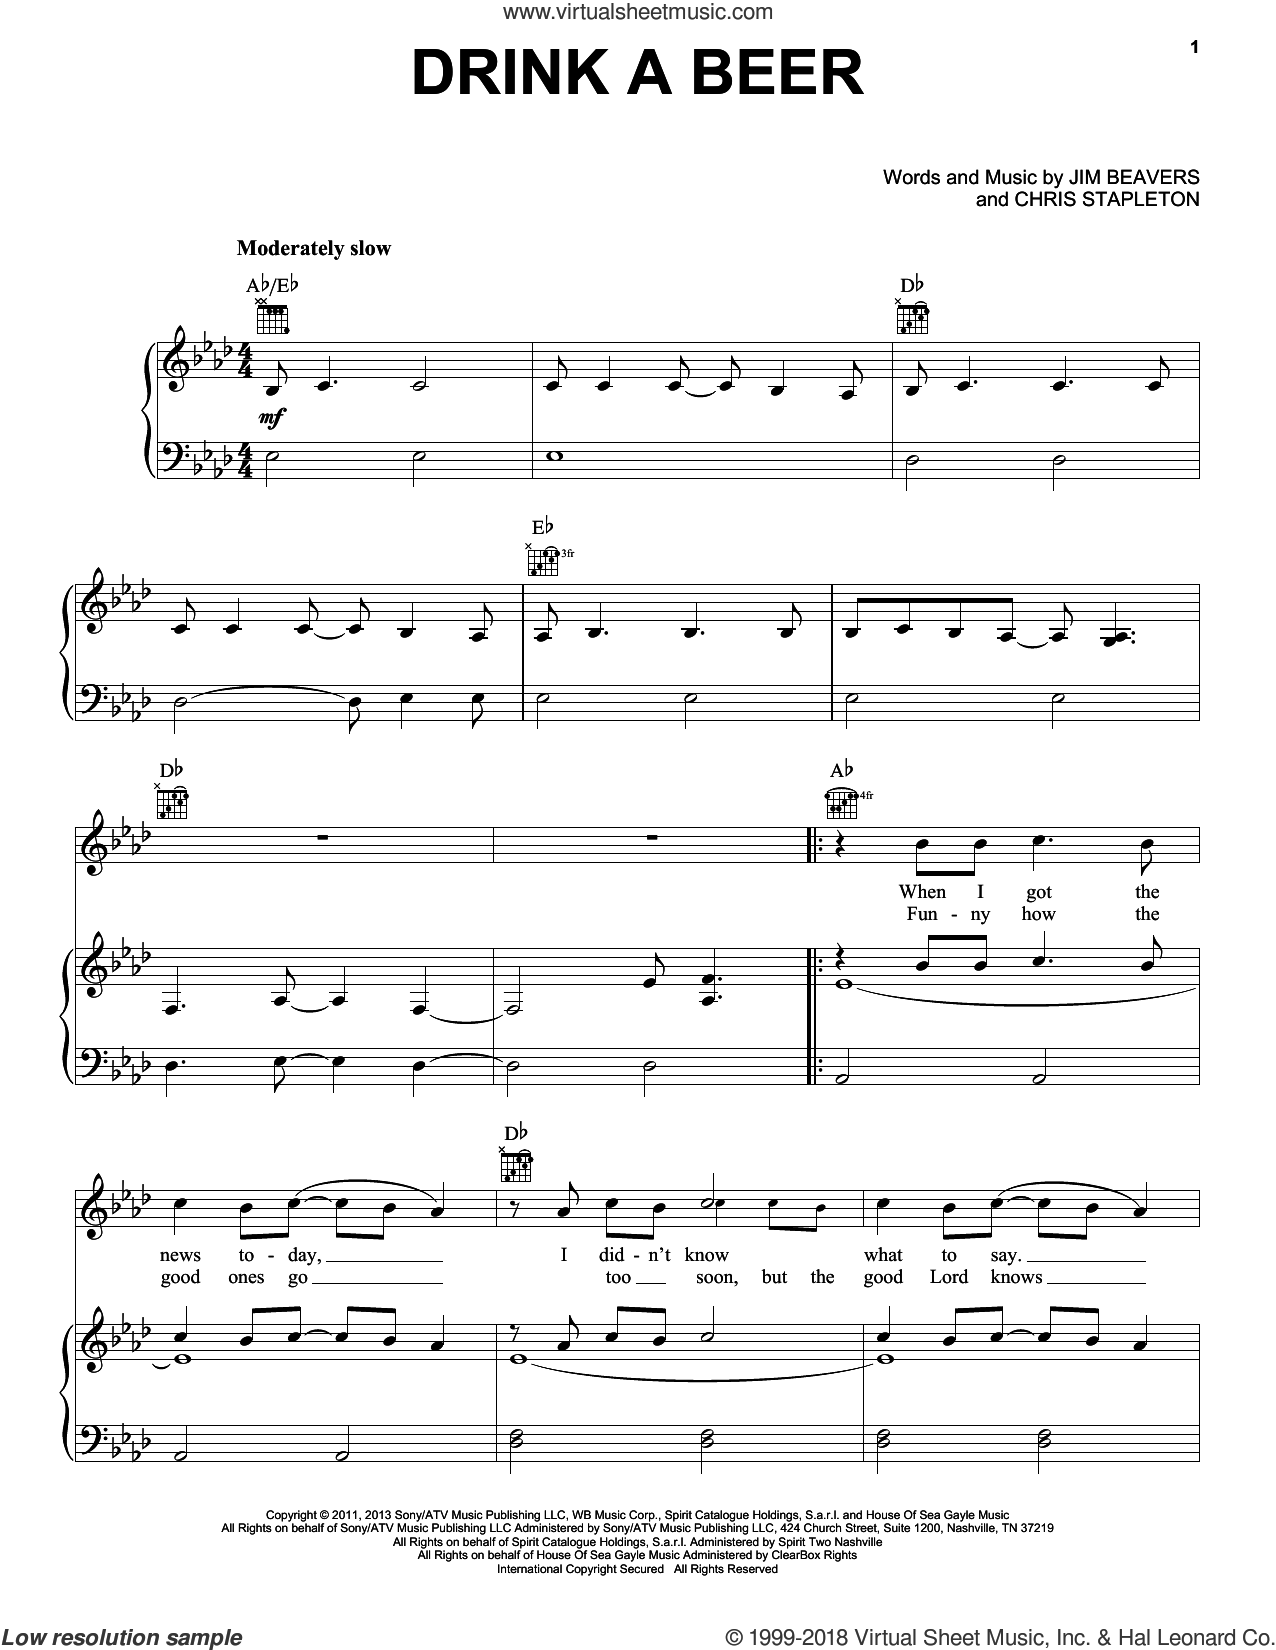 Drink A Beer sheet music for voice, piano or guitar by Luke Bryan